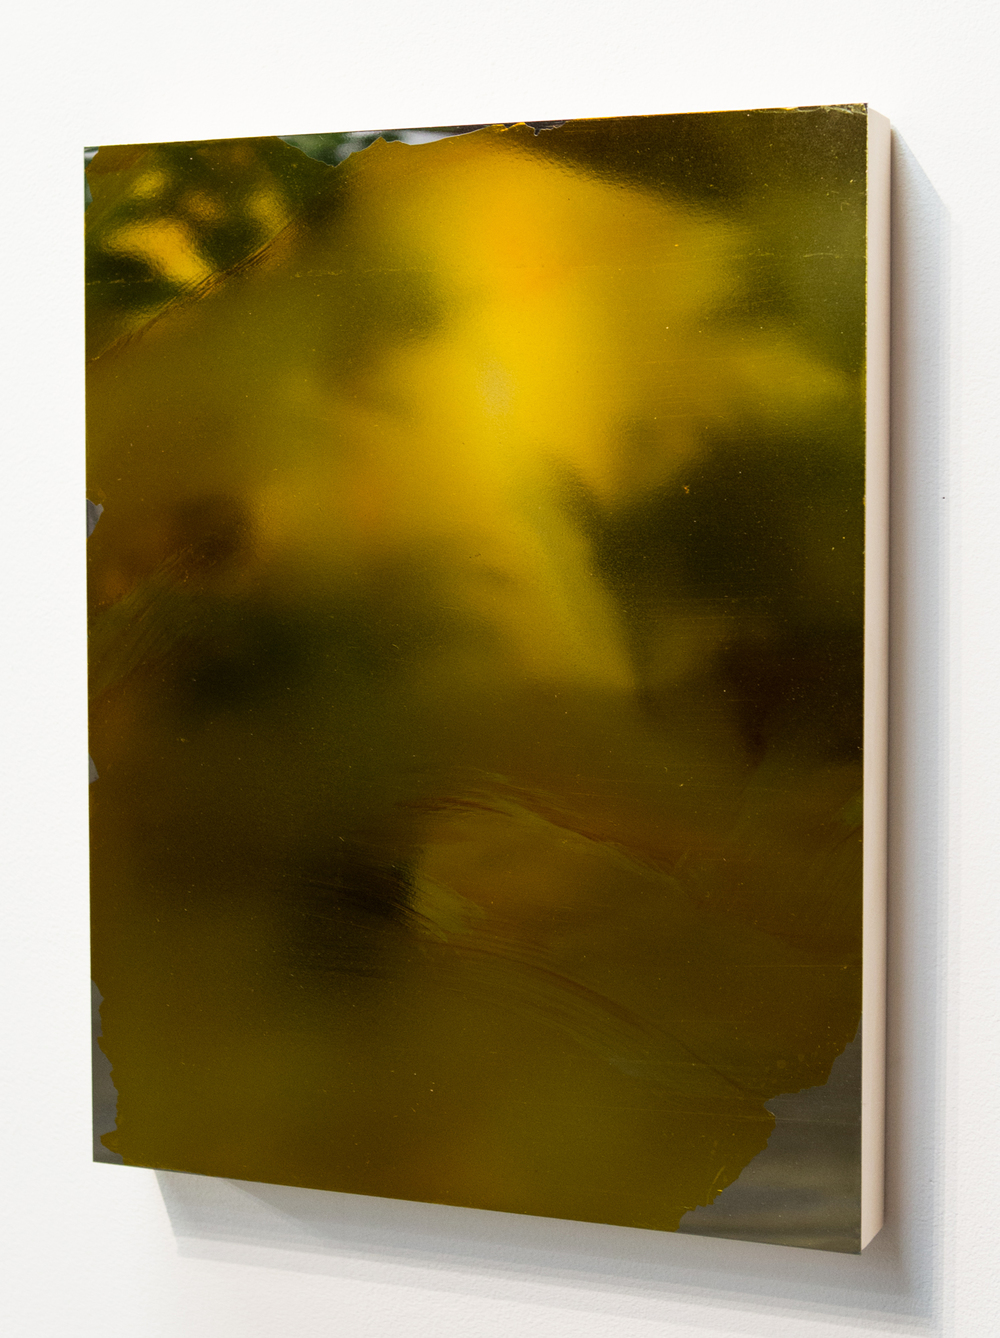 MLSL_14_Bunny, 2015  Gold tint on stainless steel  18 x 14 in (45.72 x 35.56 cm)